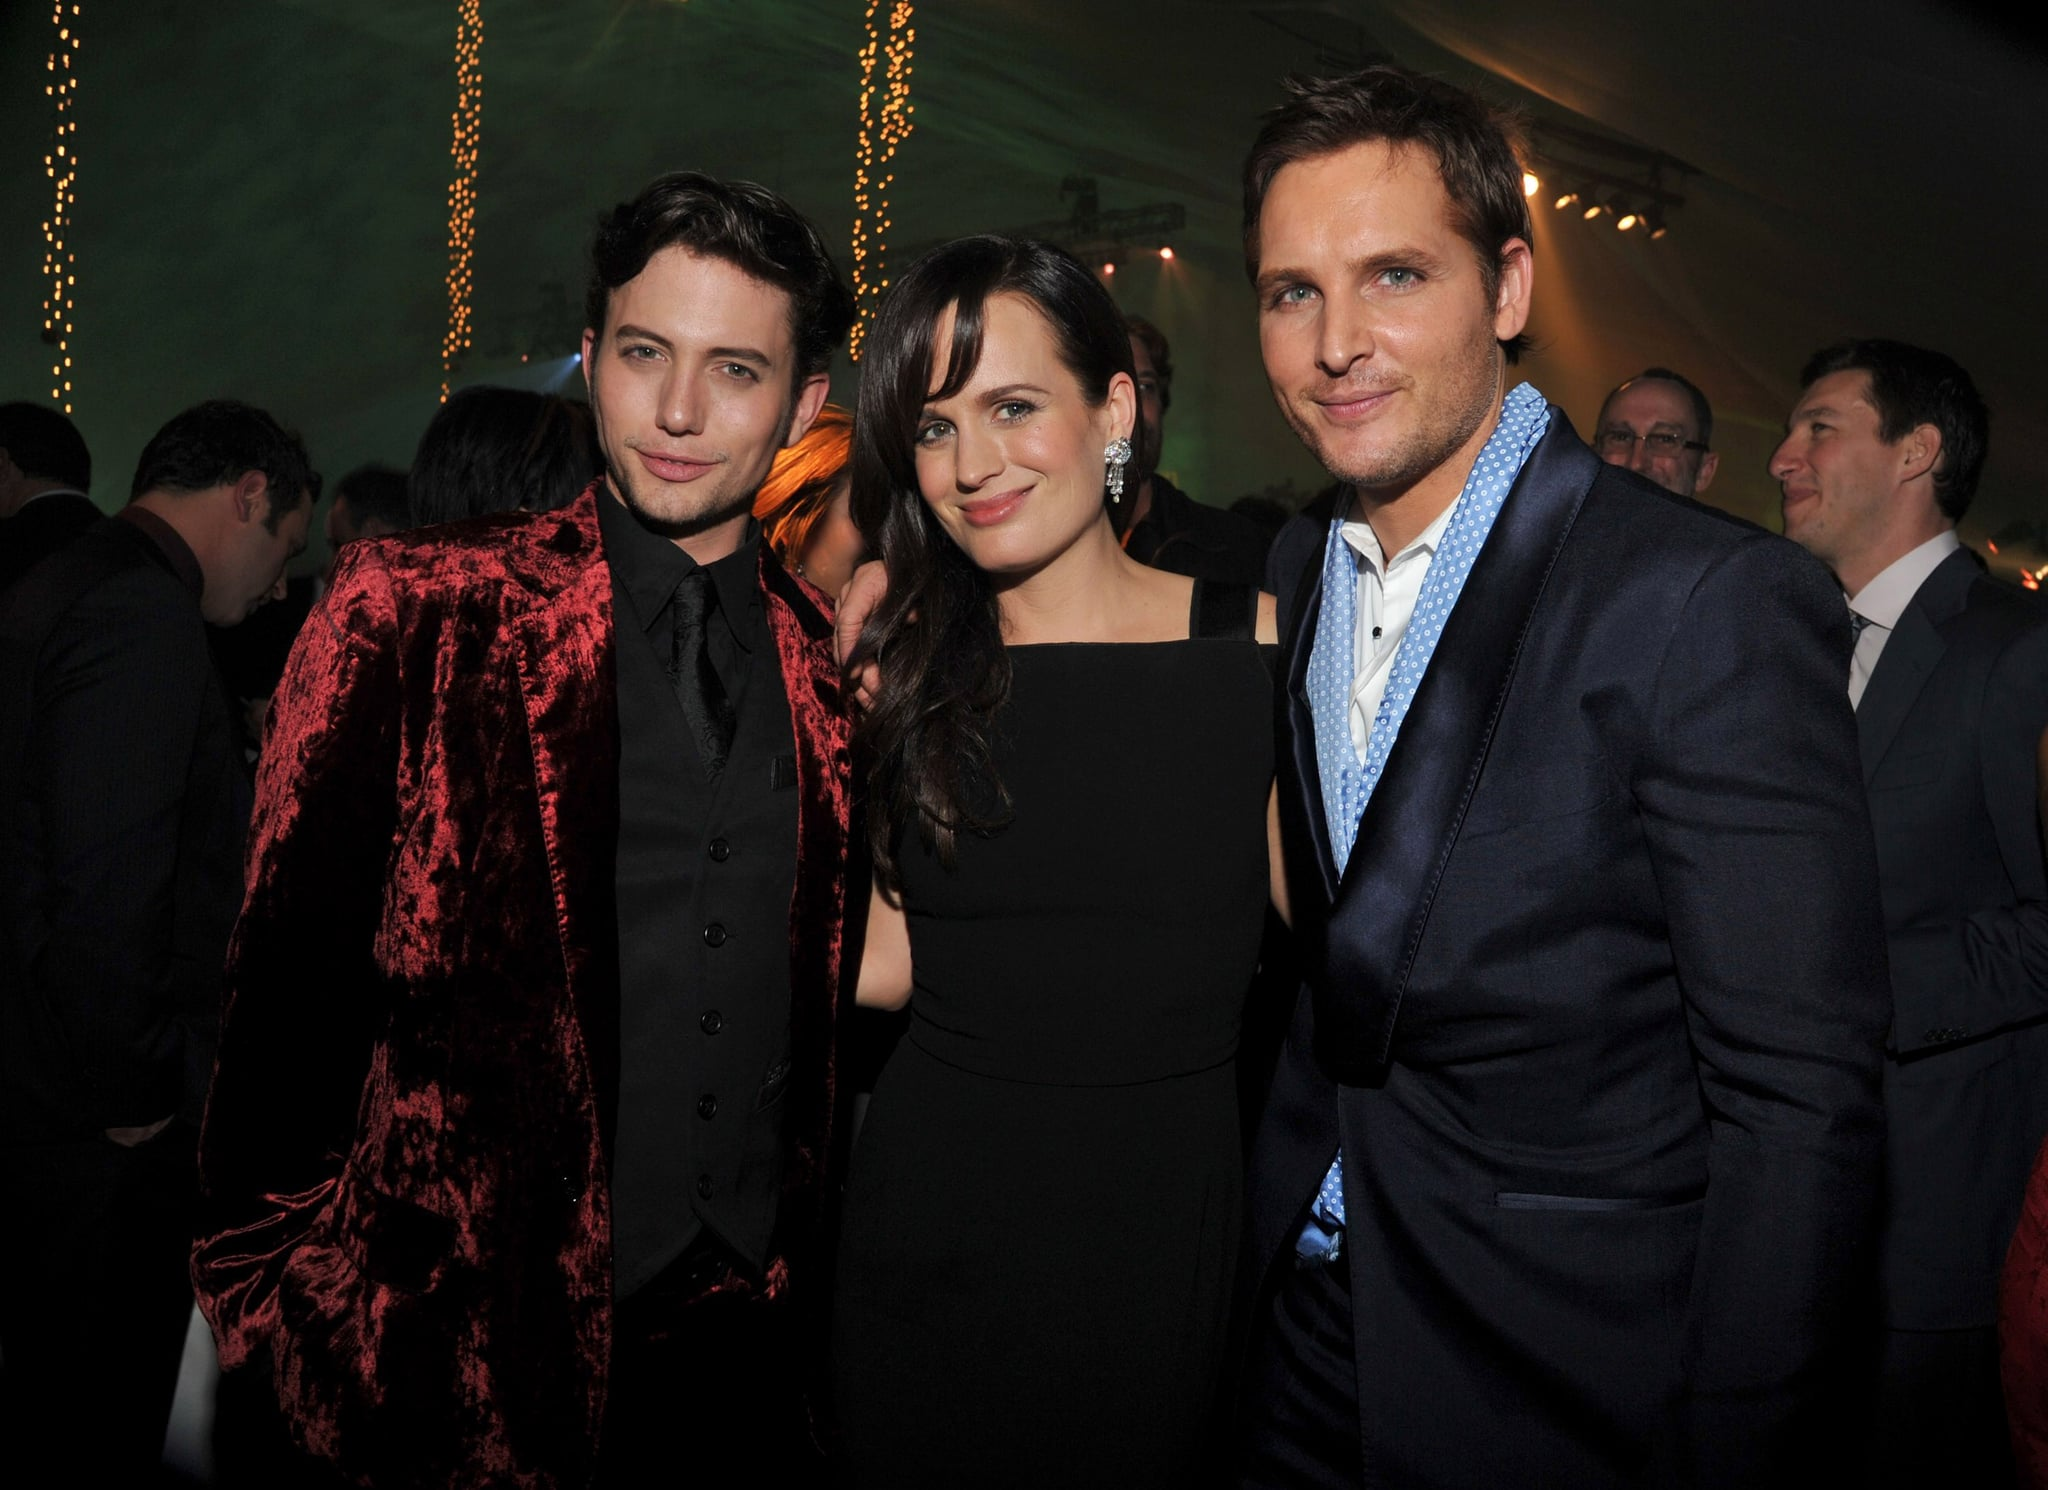 Peter Facinelli and Jackson Rathbone posed with Elizabeth Reaser at the Breaking Dawn afterparty.